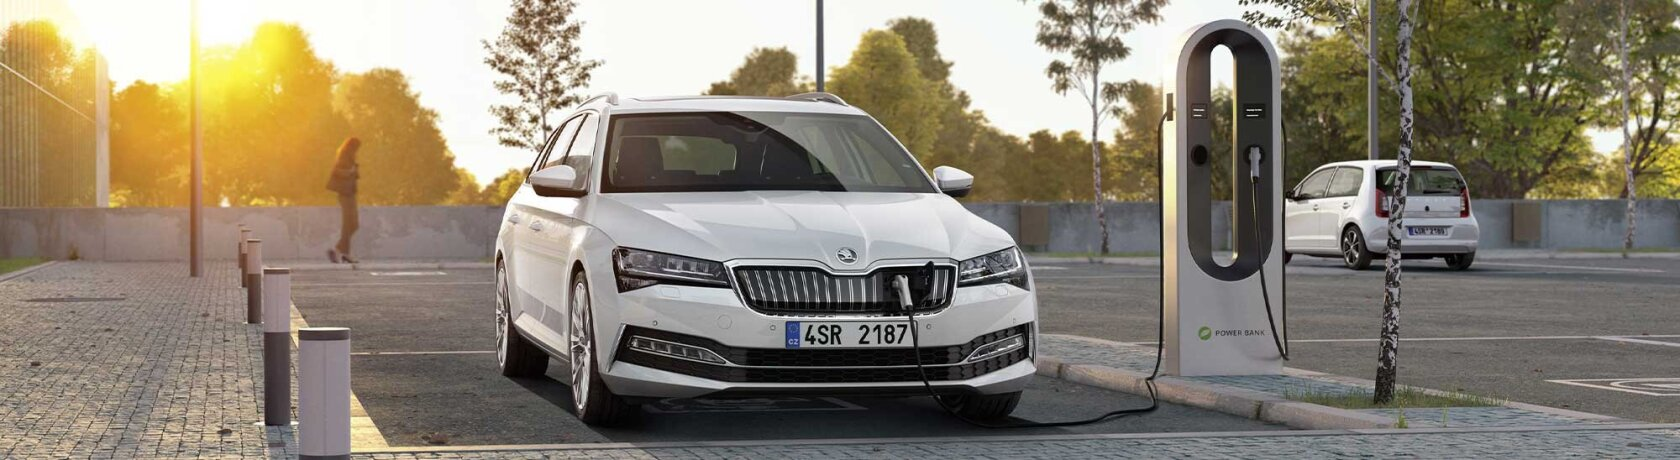 skoda superb iv som lader